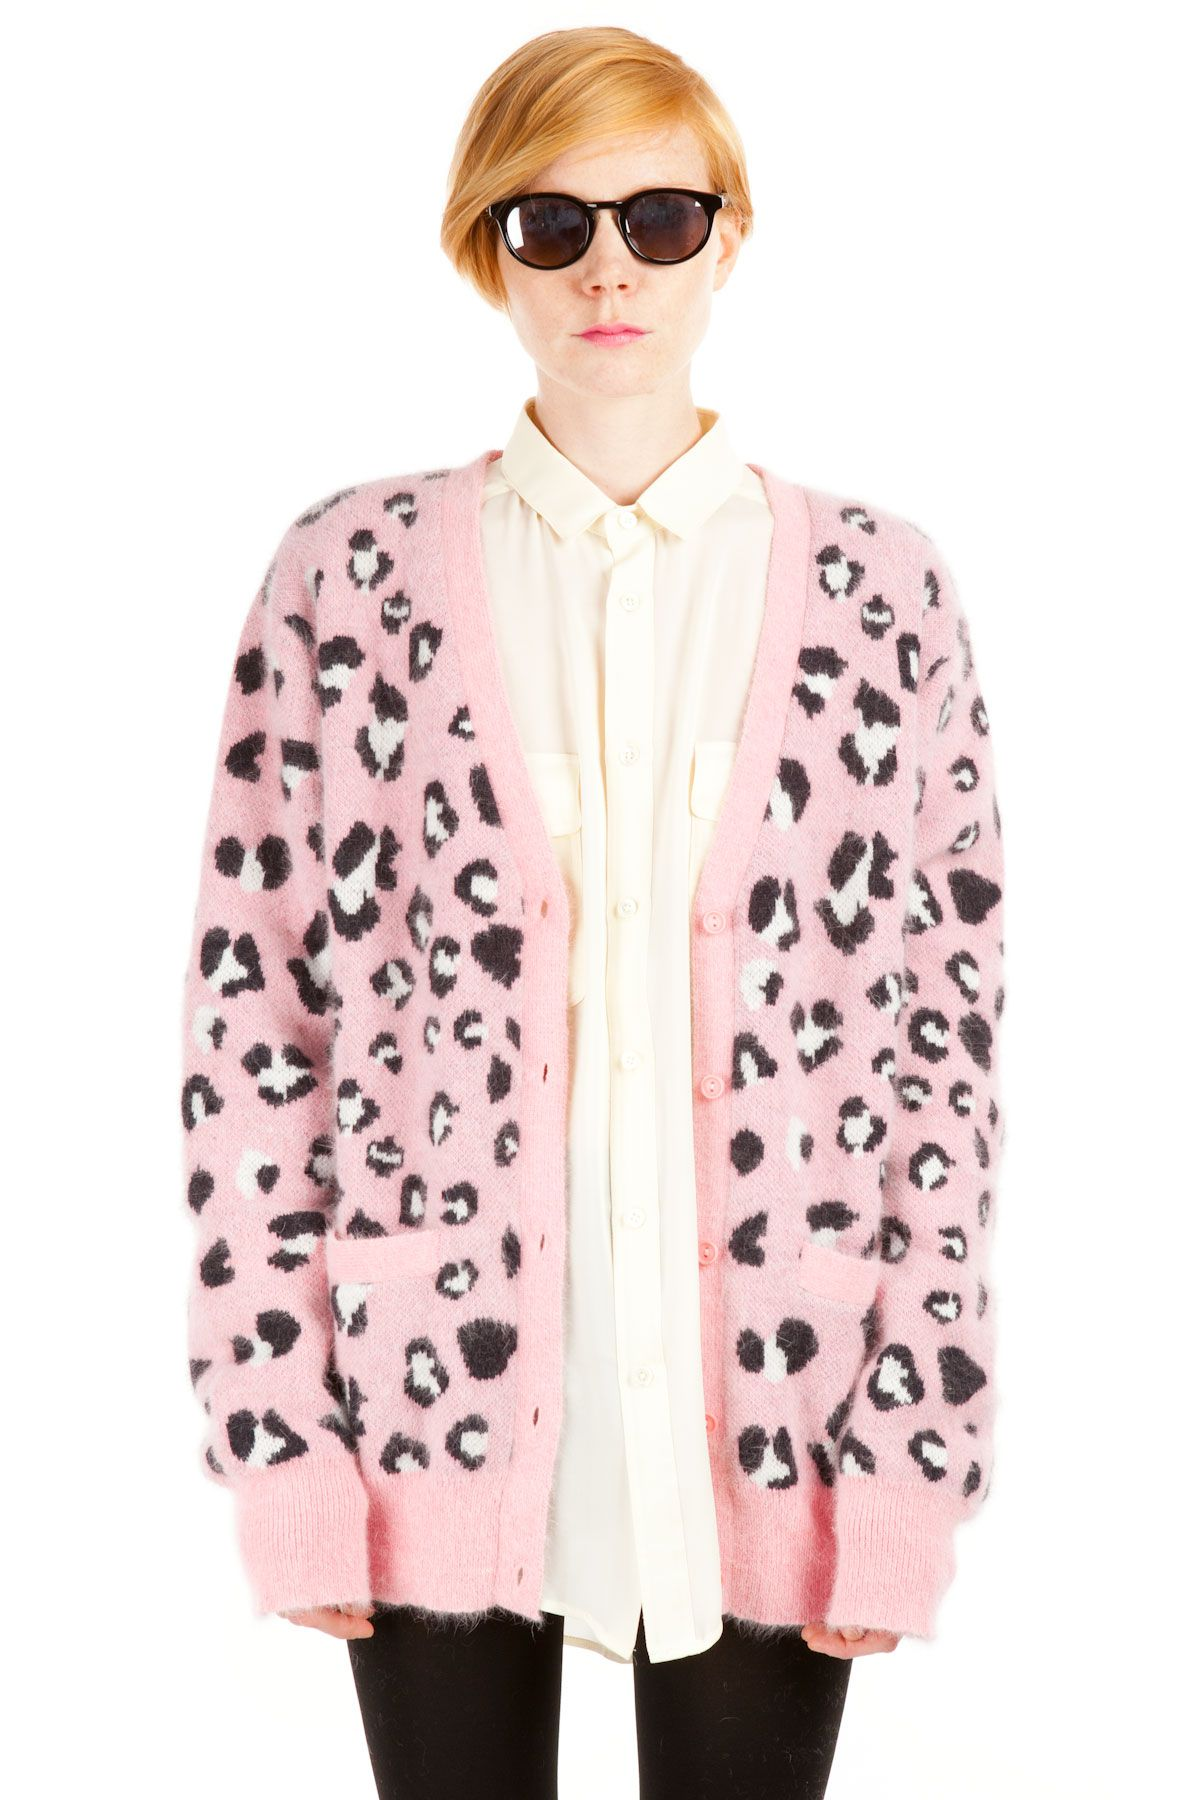 Chloe Sevigny for Opening Ceremony Leopard Cardigan | Clothes ...